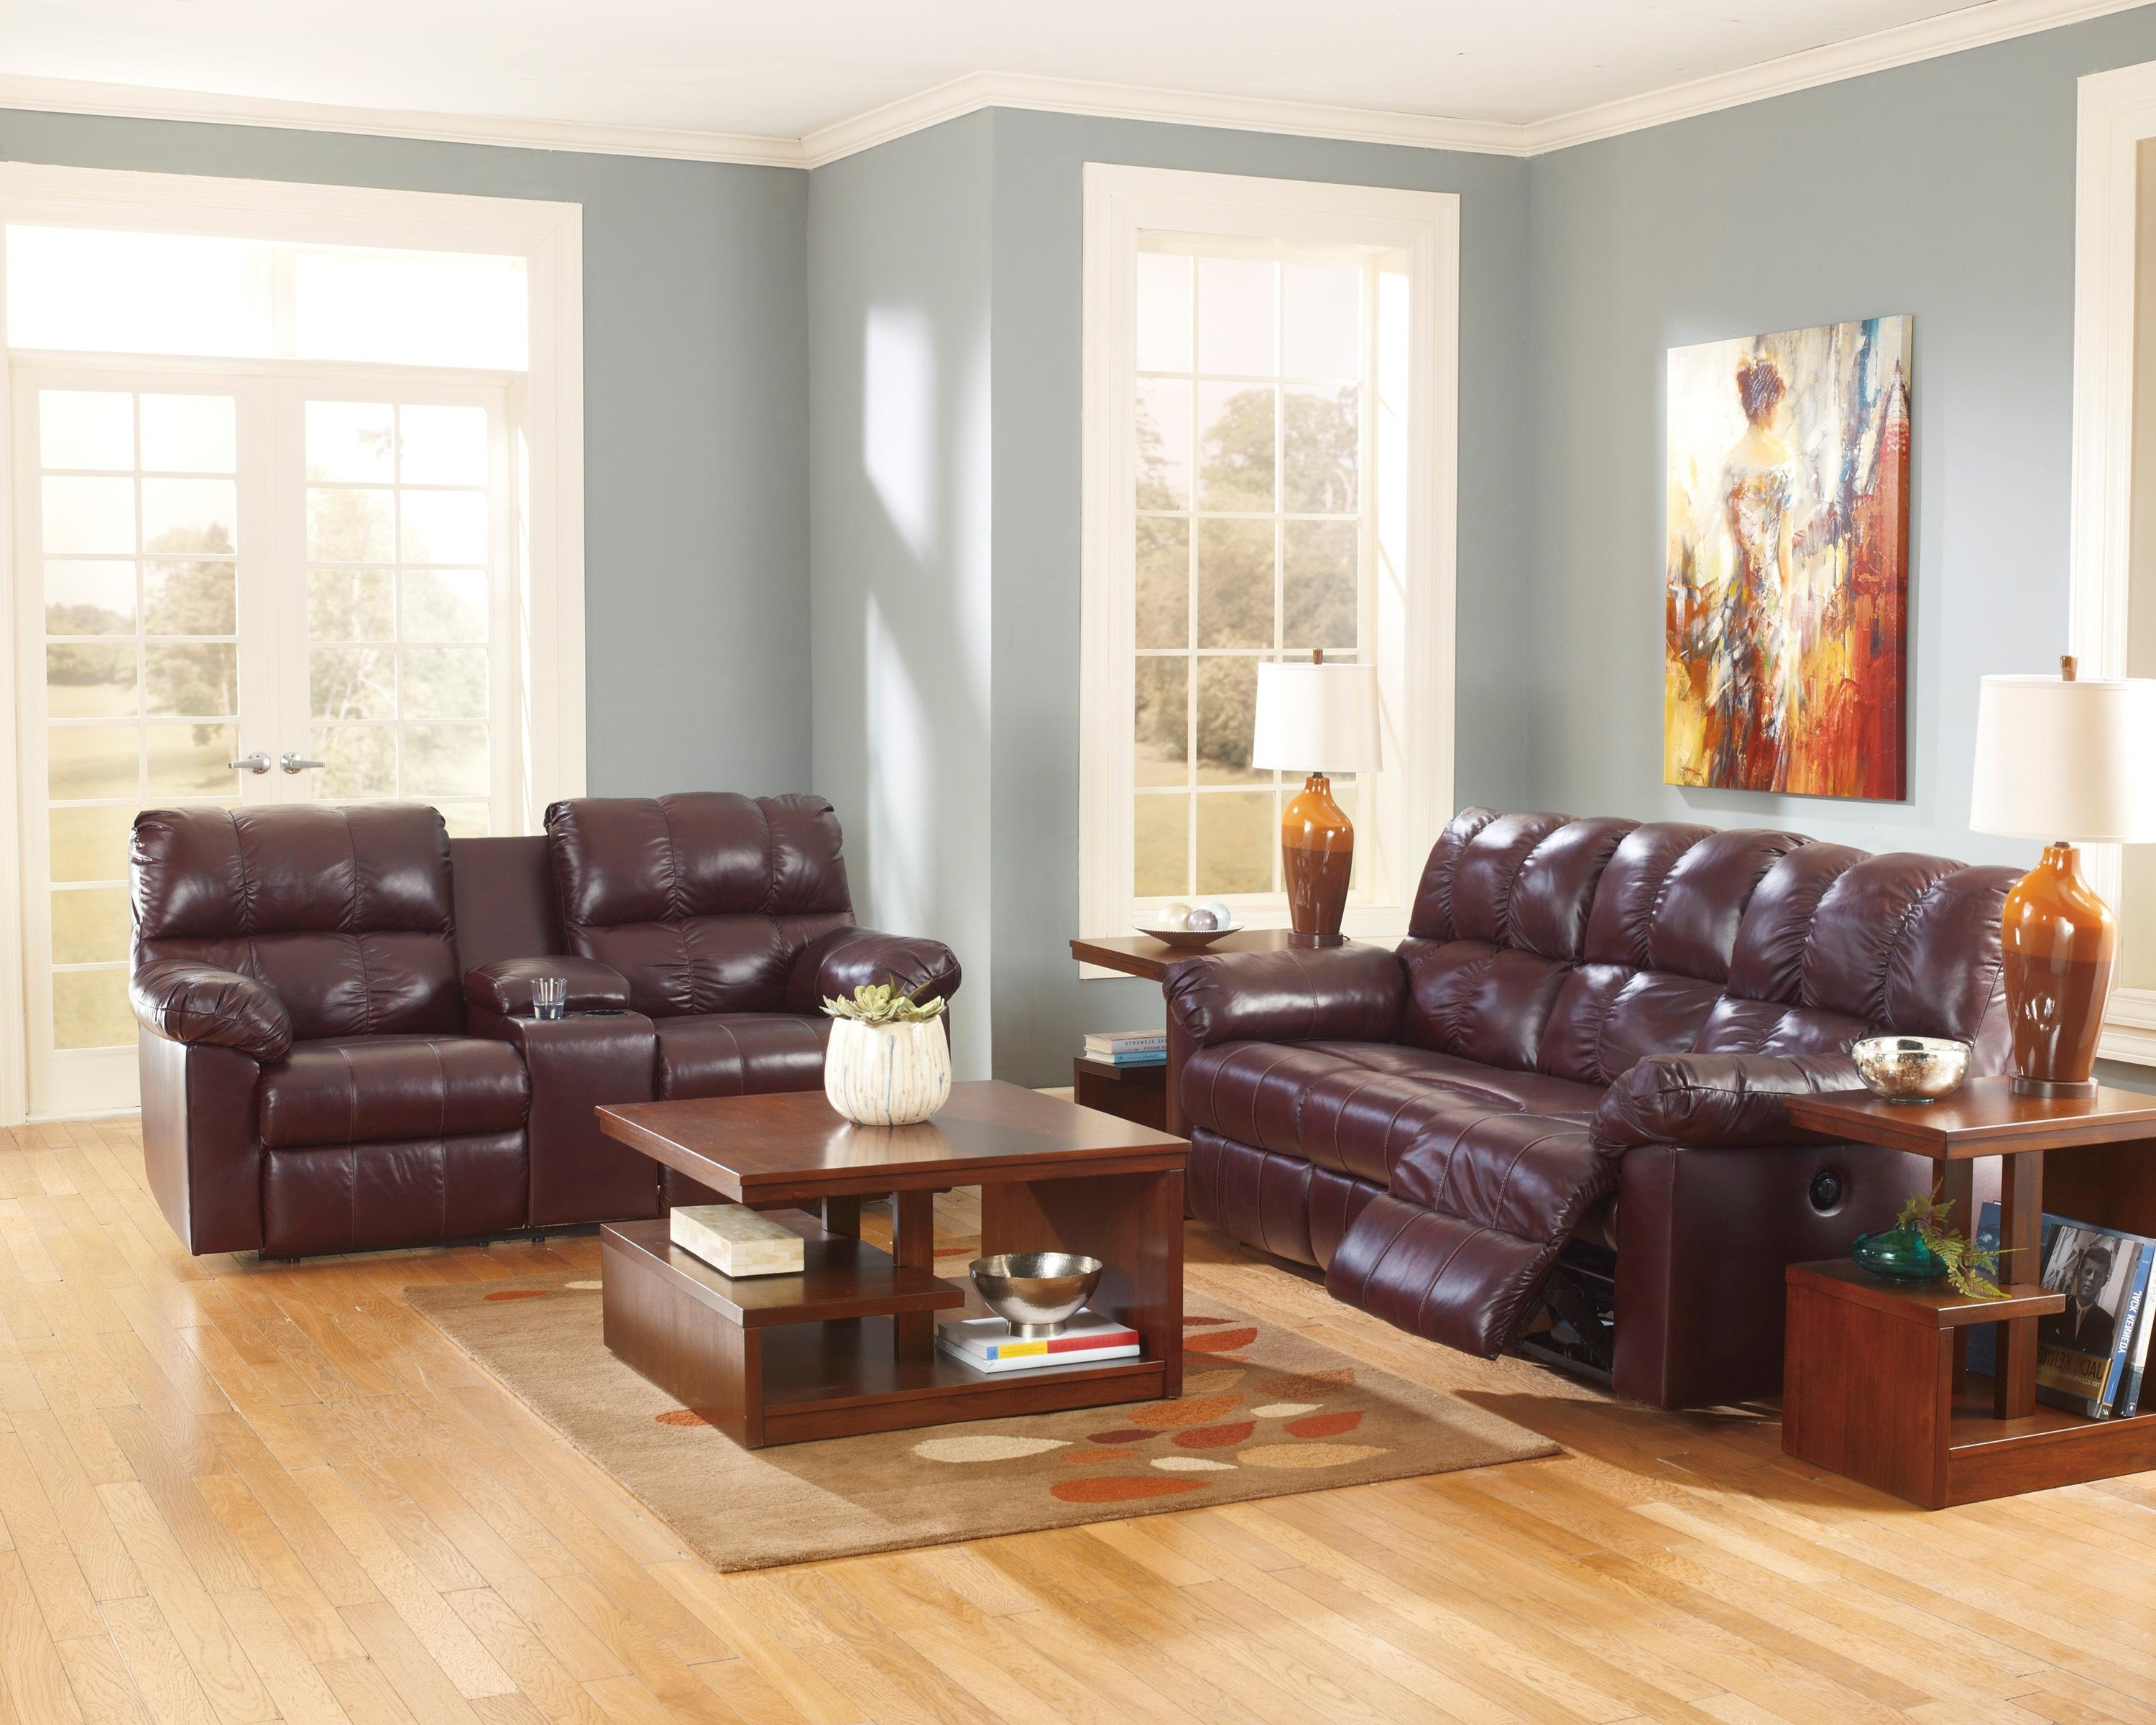 Sofas Center : Top Grain Leather Reclining Sofa Berkline With High With Regard To Berkline Sofa (Image 20 of 20)